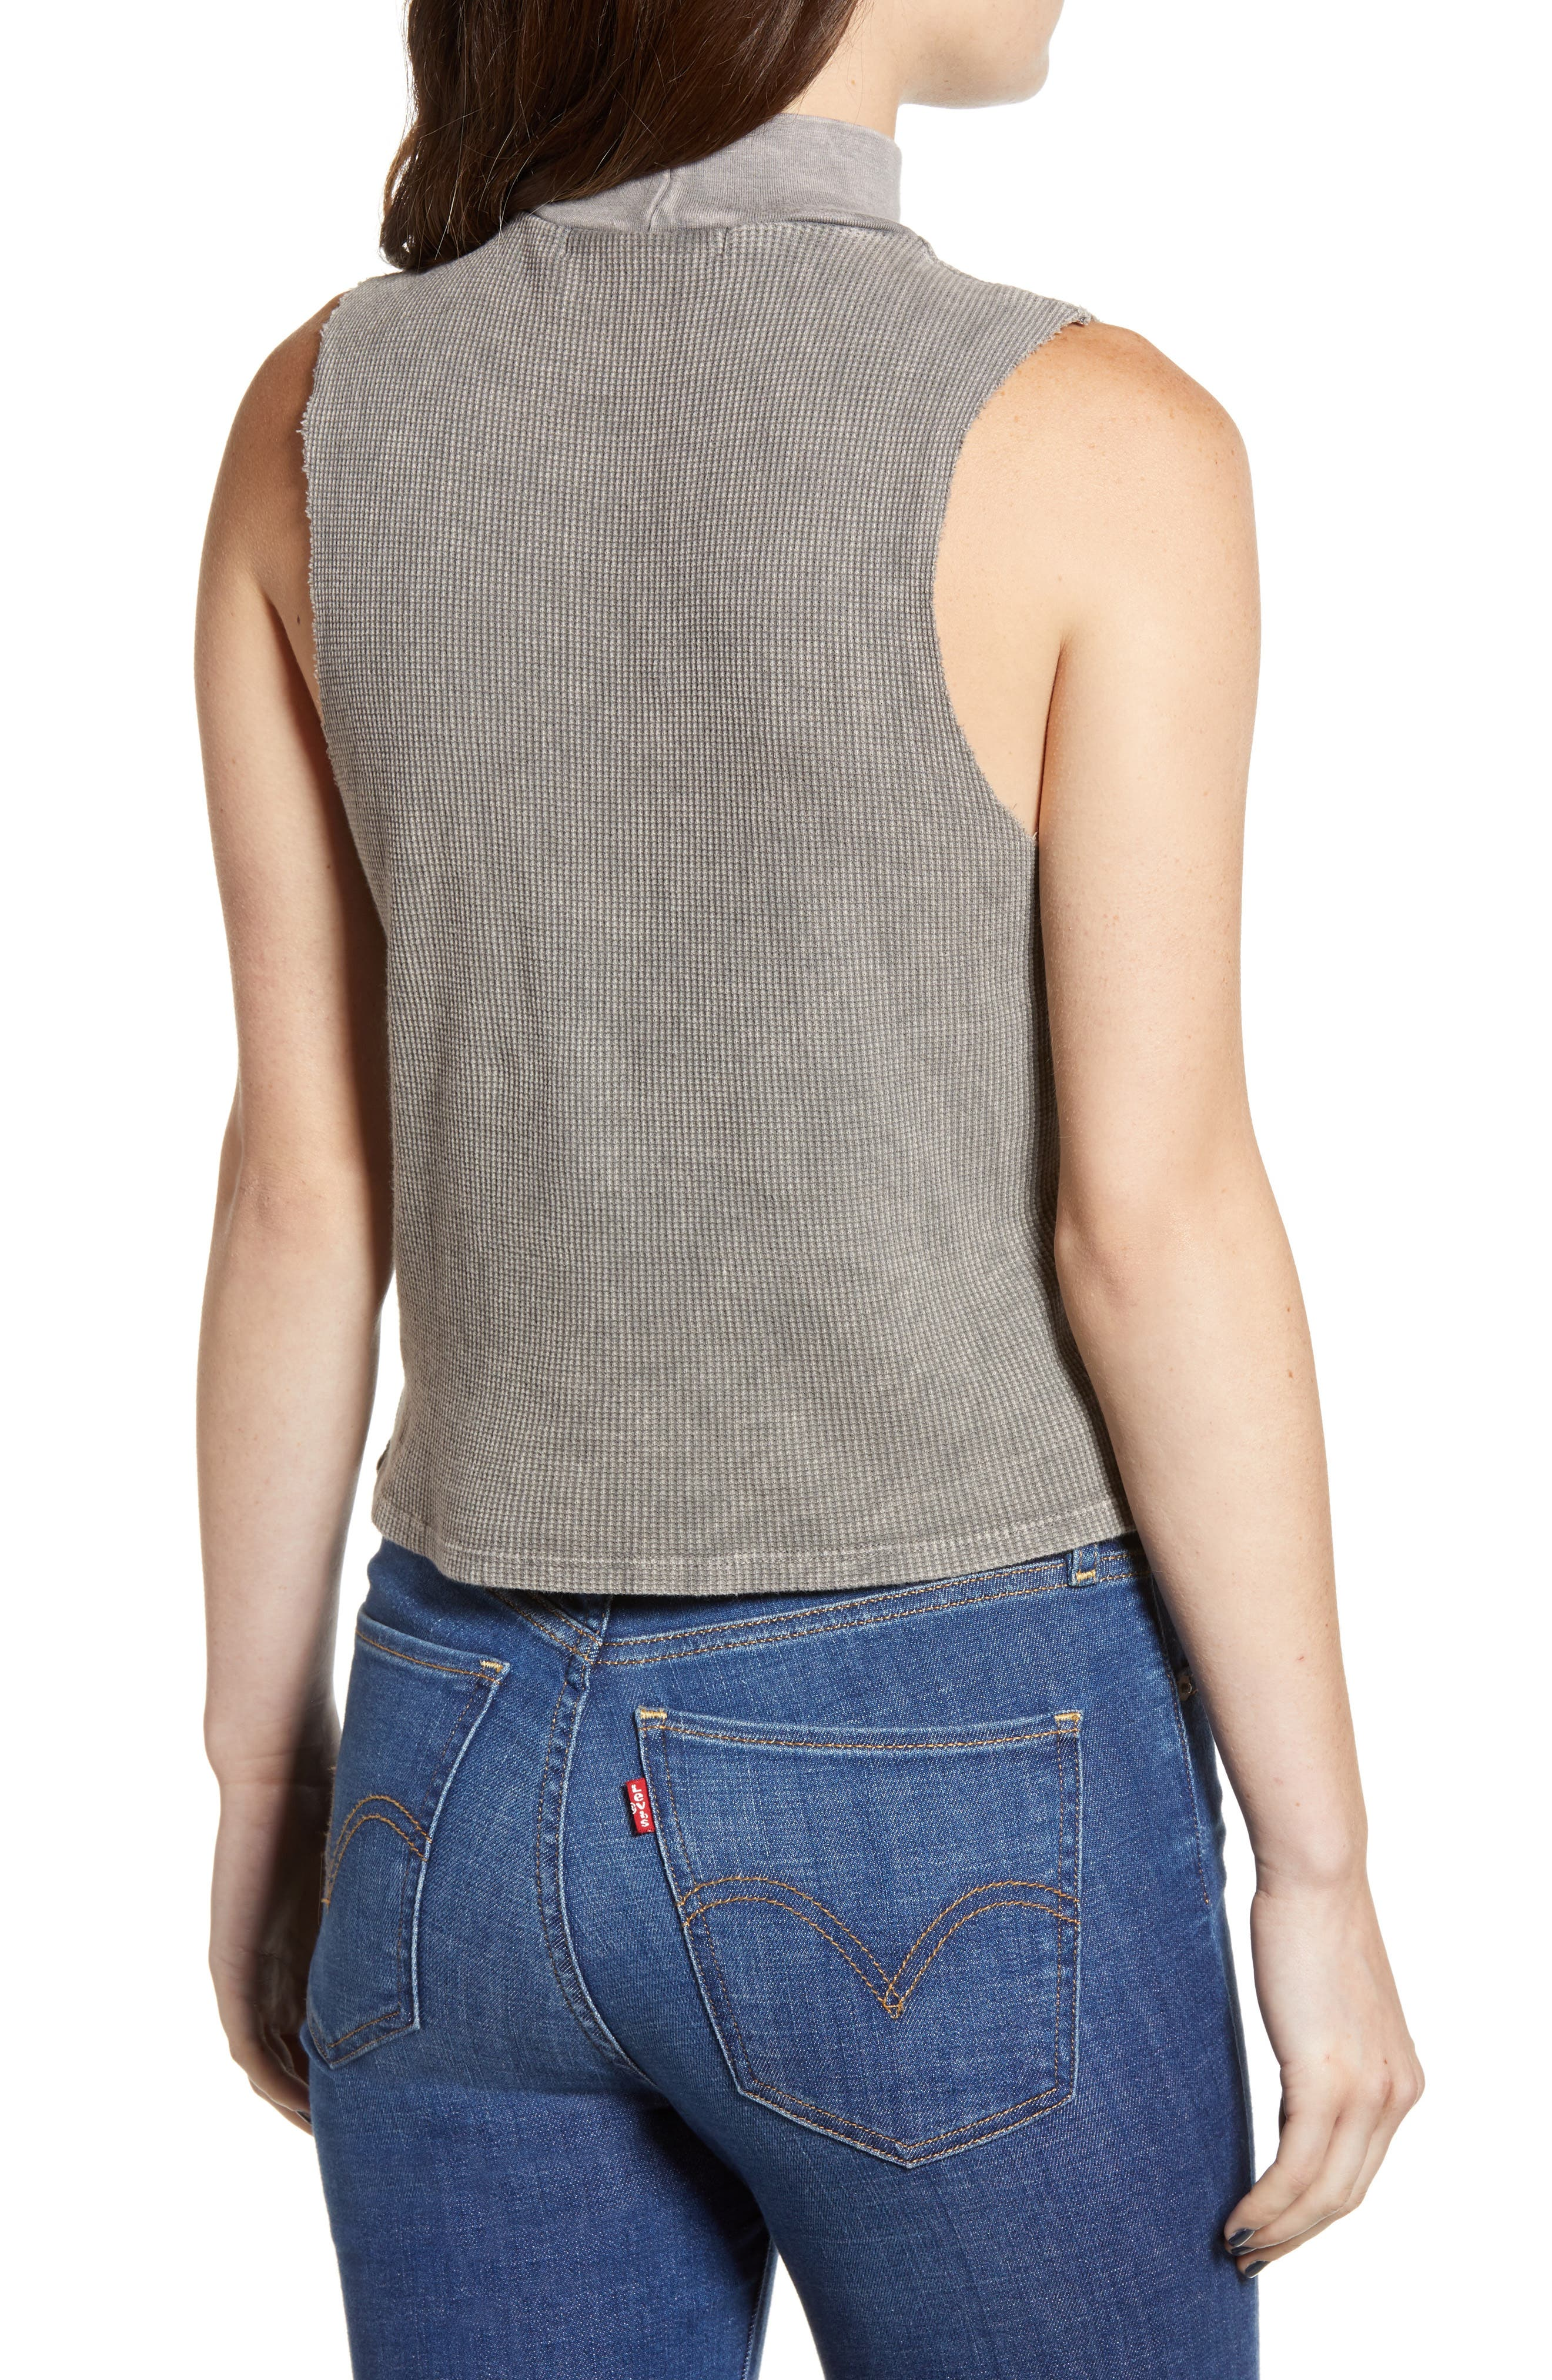 Annie Thermal Sleeveless Mock Neck Top,                             Alternate thumbnail 2, color,                             MW SMOKY NOIR